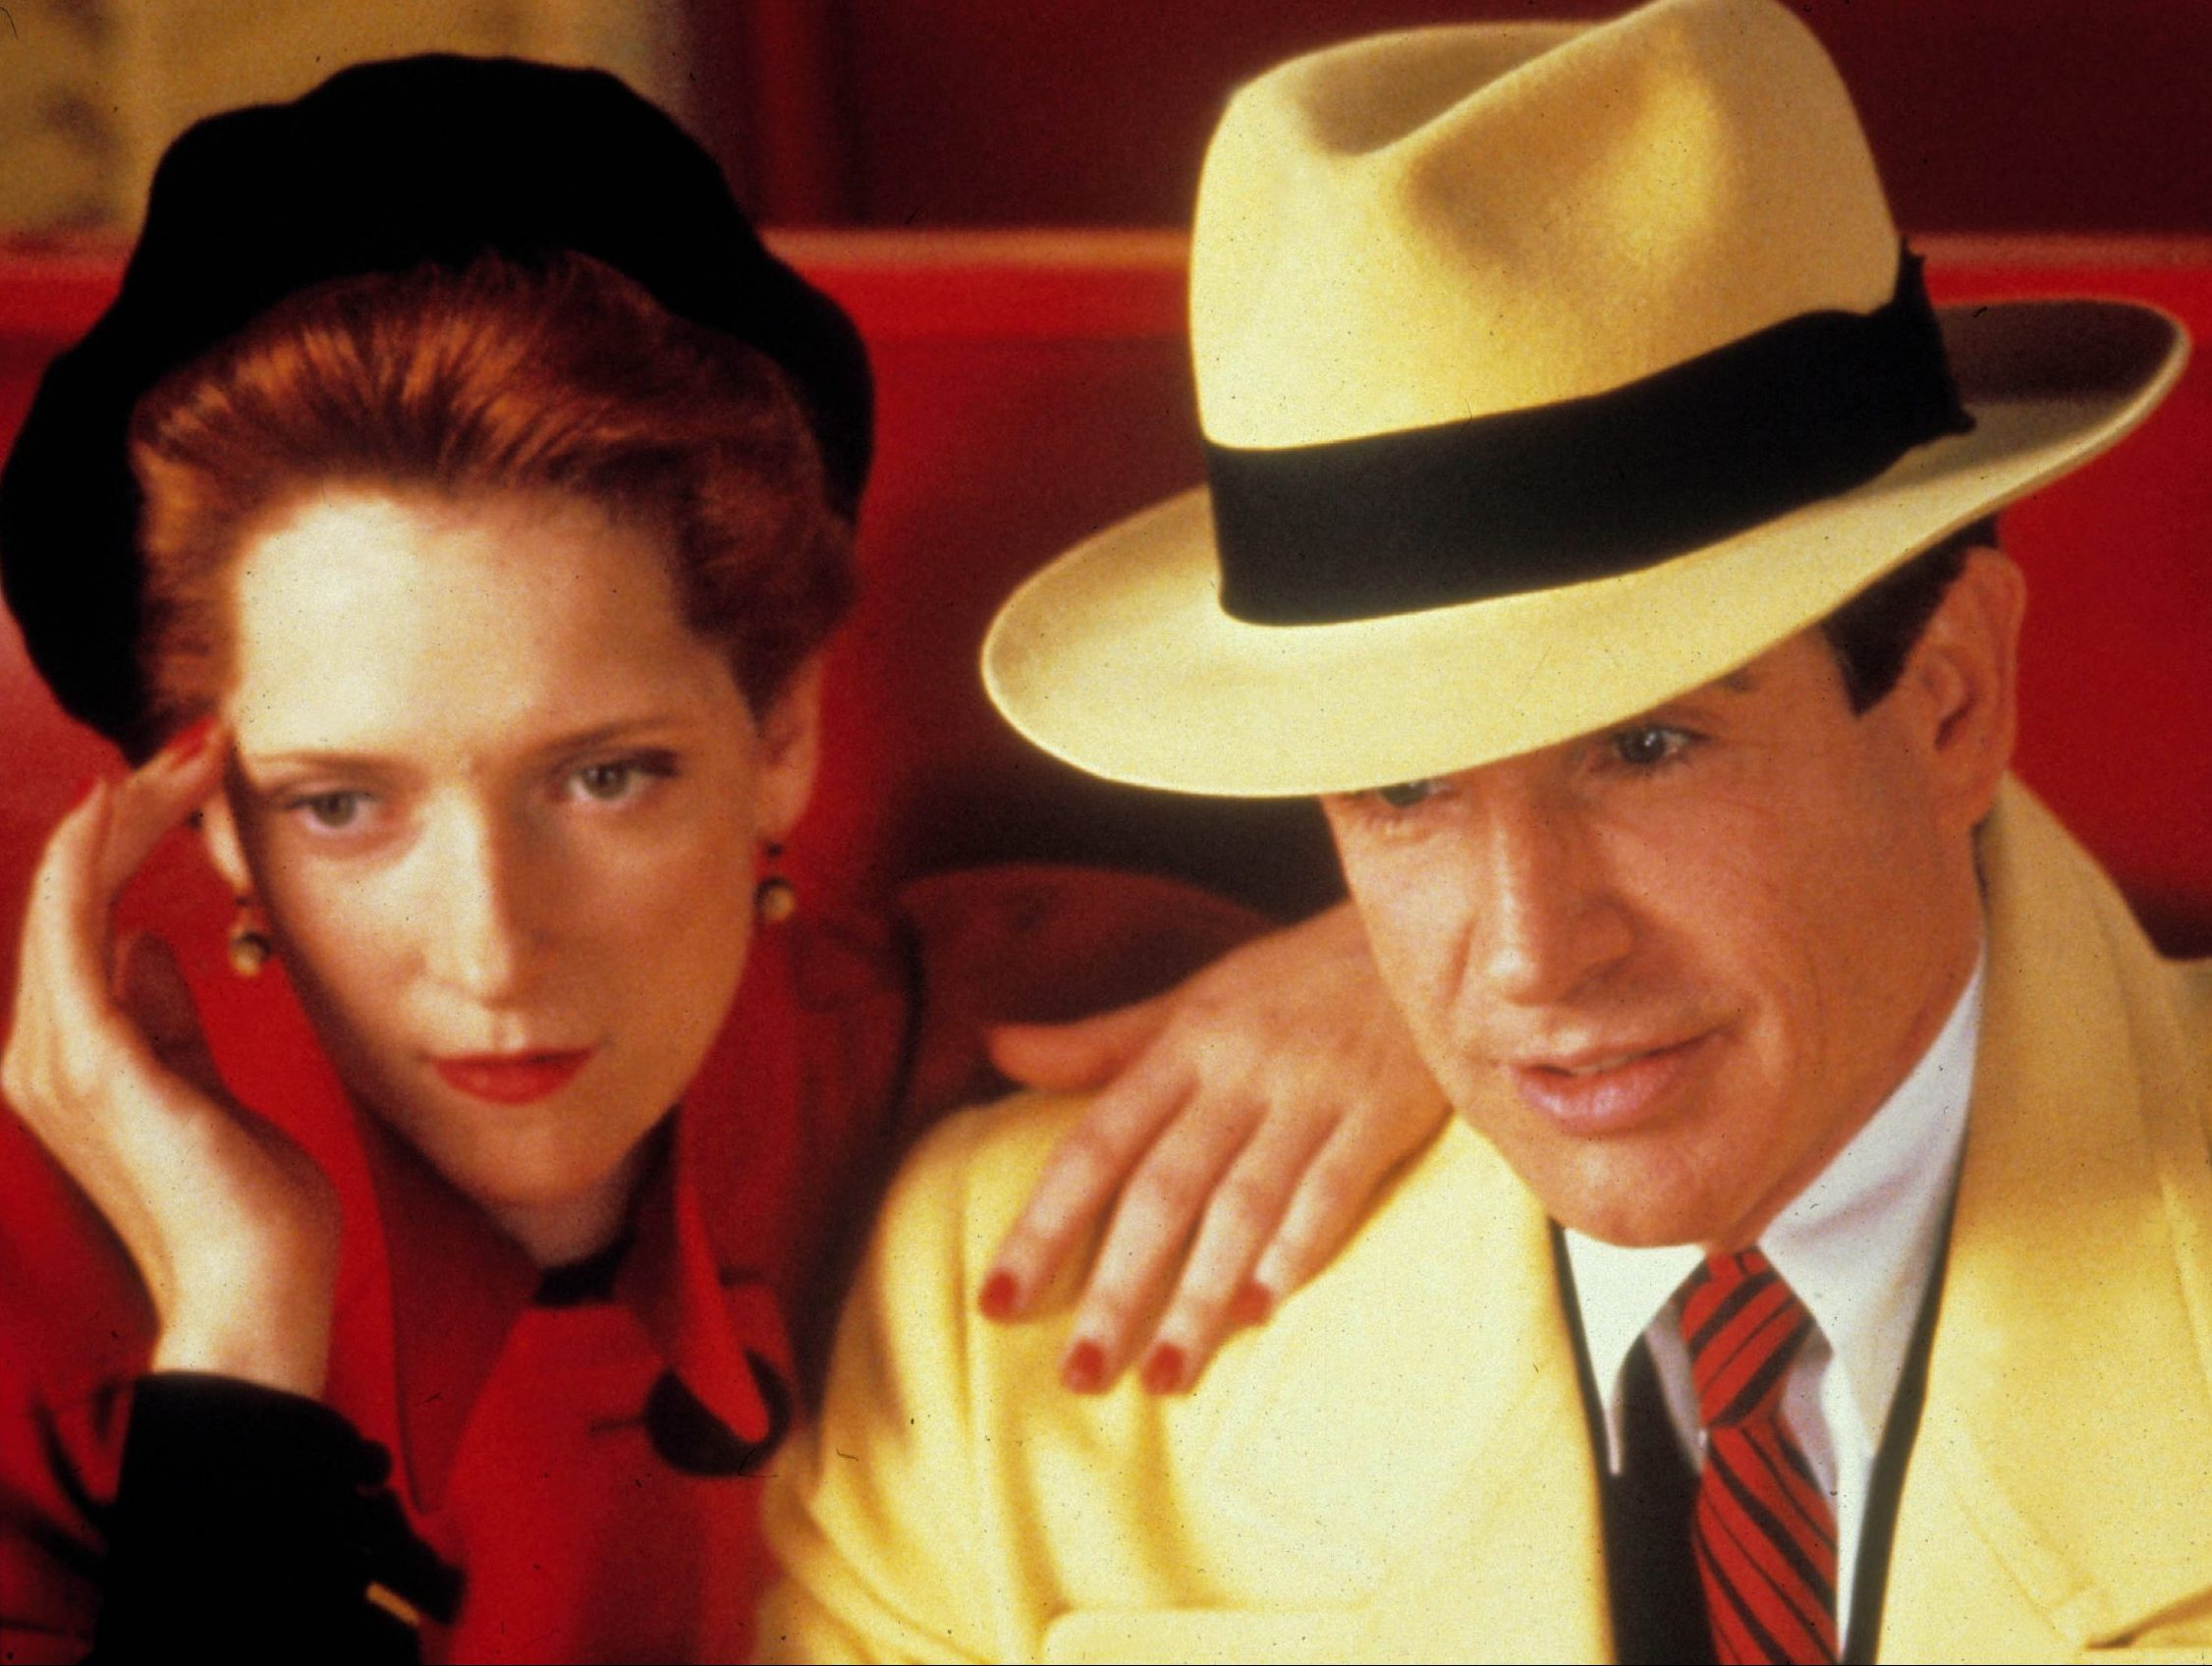 dick tracy warren beatty scaled e1612439795232 The Spectacular Rise and Catastrophic Fall of Sean Young